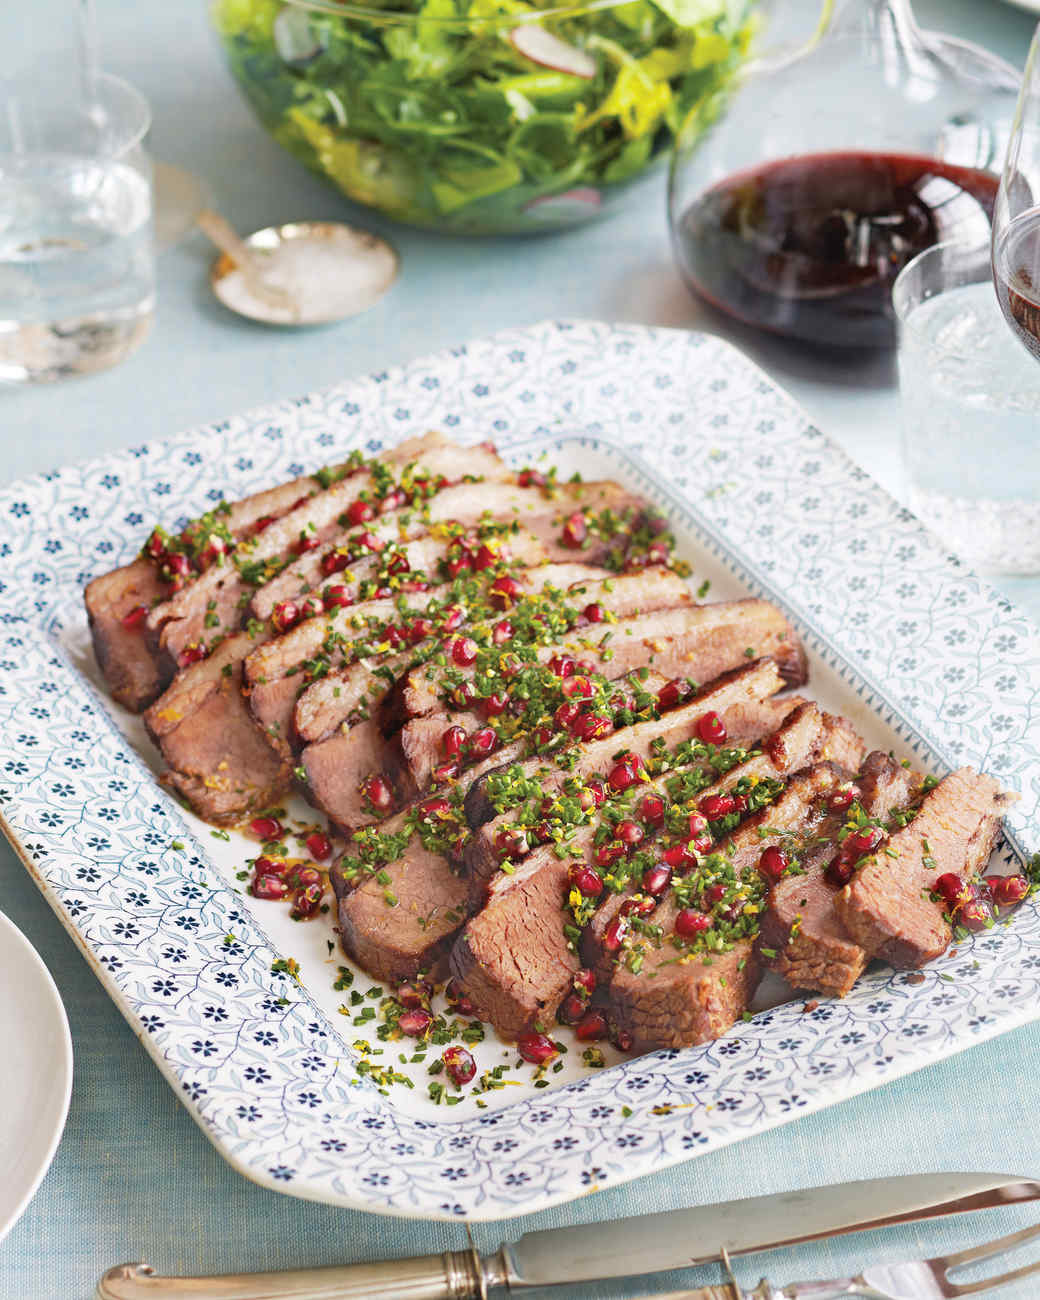 Meyer Lemon Brisket with Pomegranate Gremolata